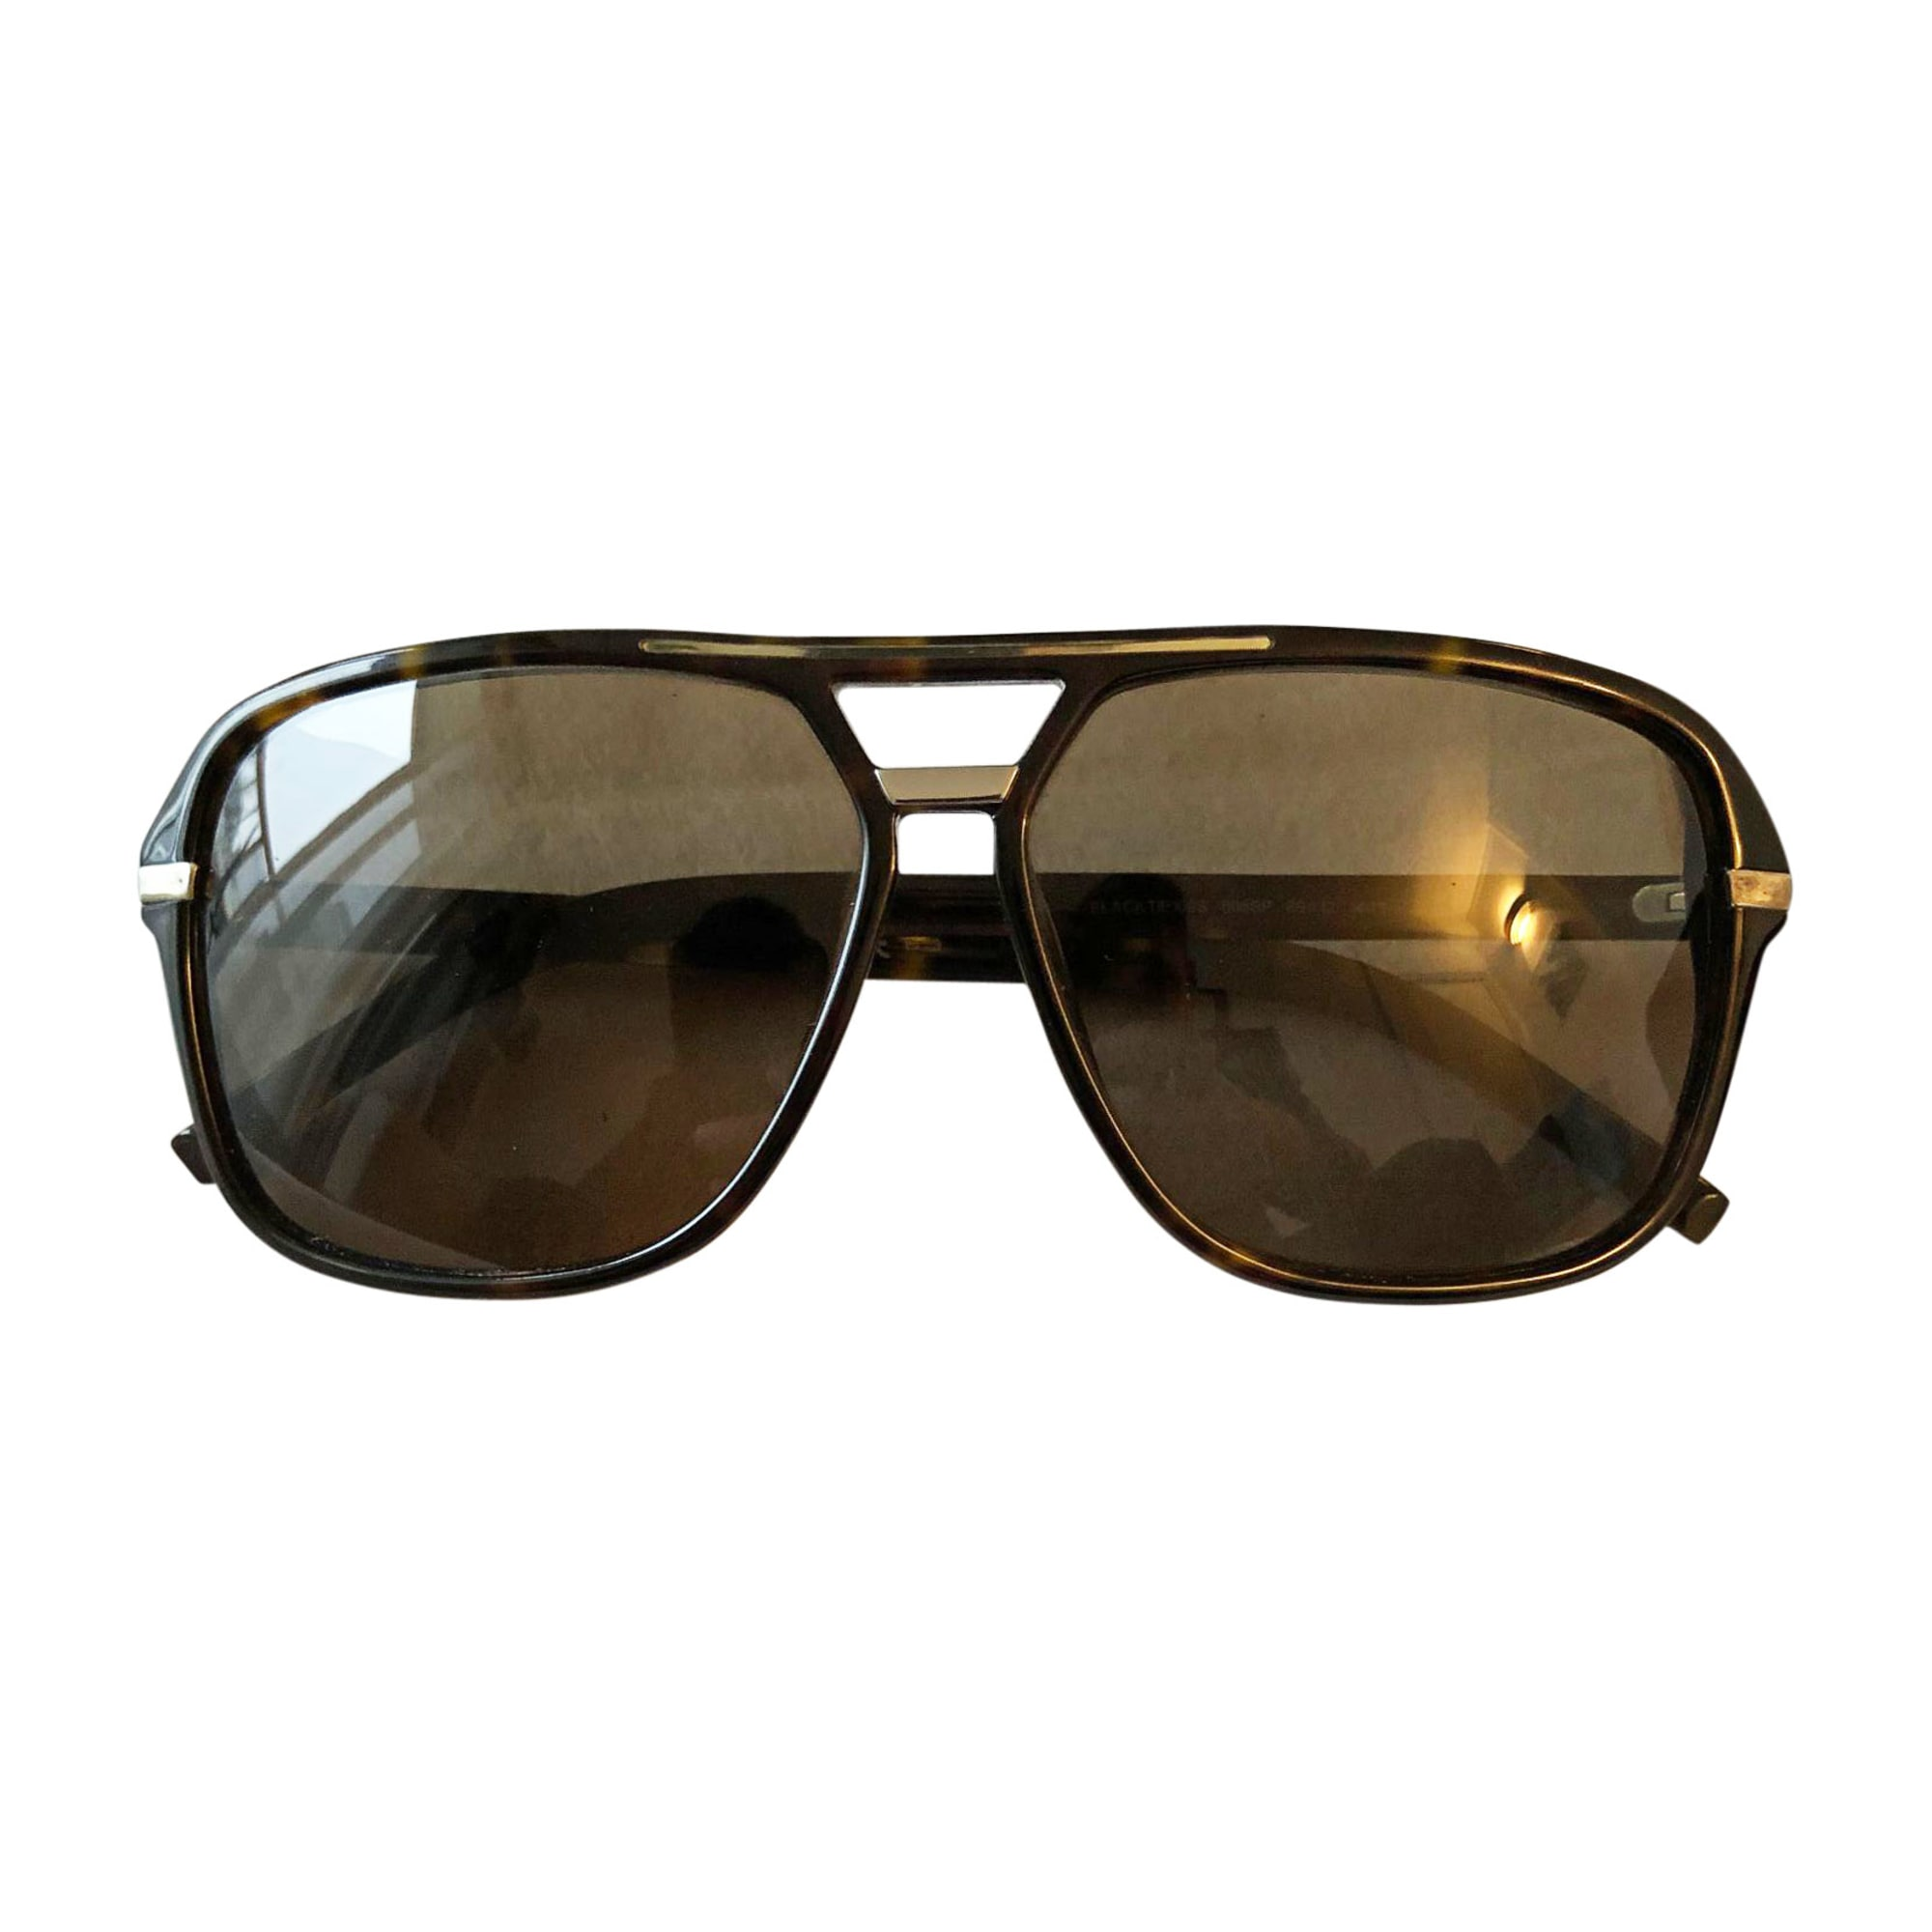 Sunglasses DIOR HOMME Black